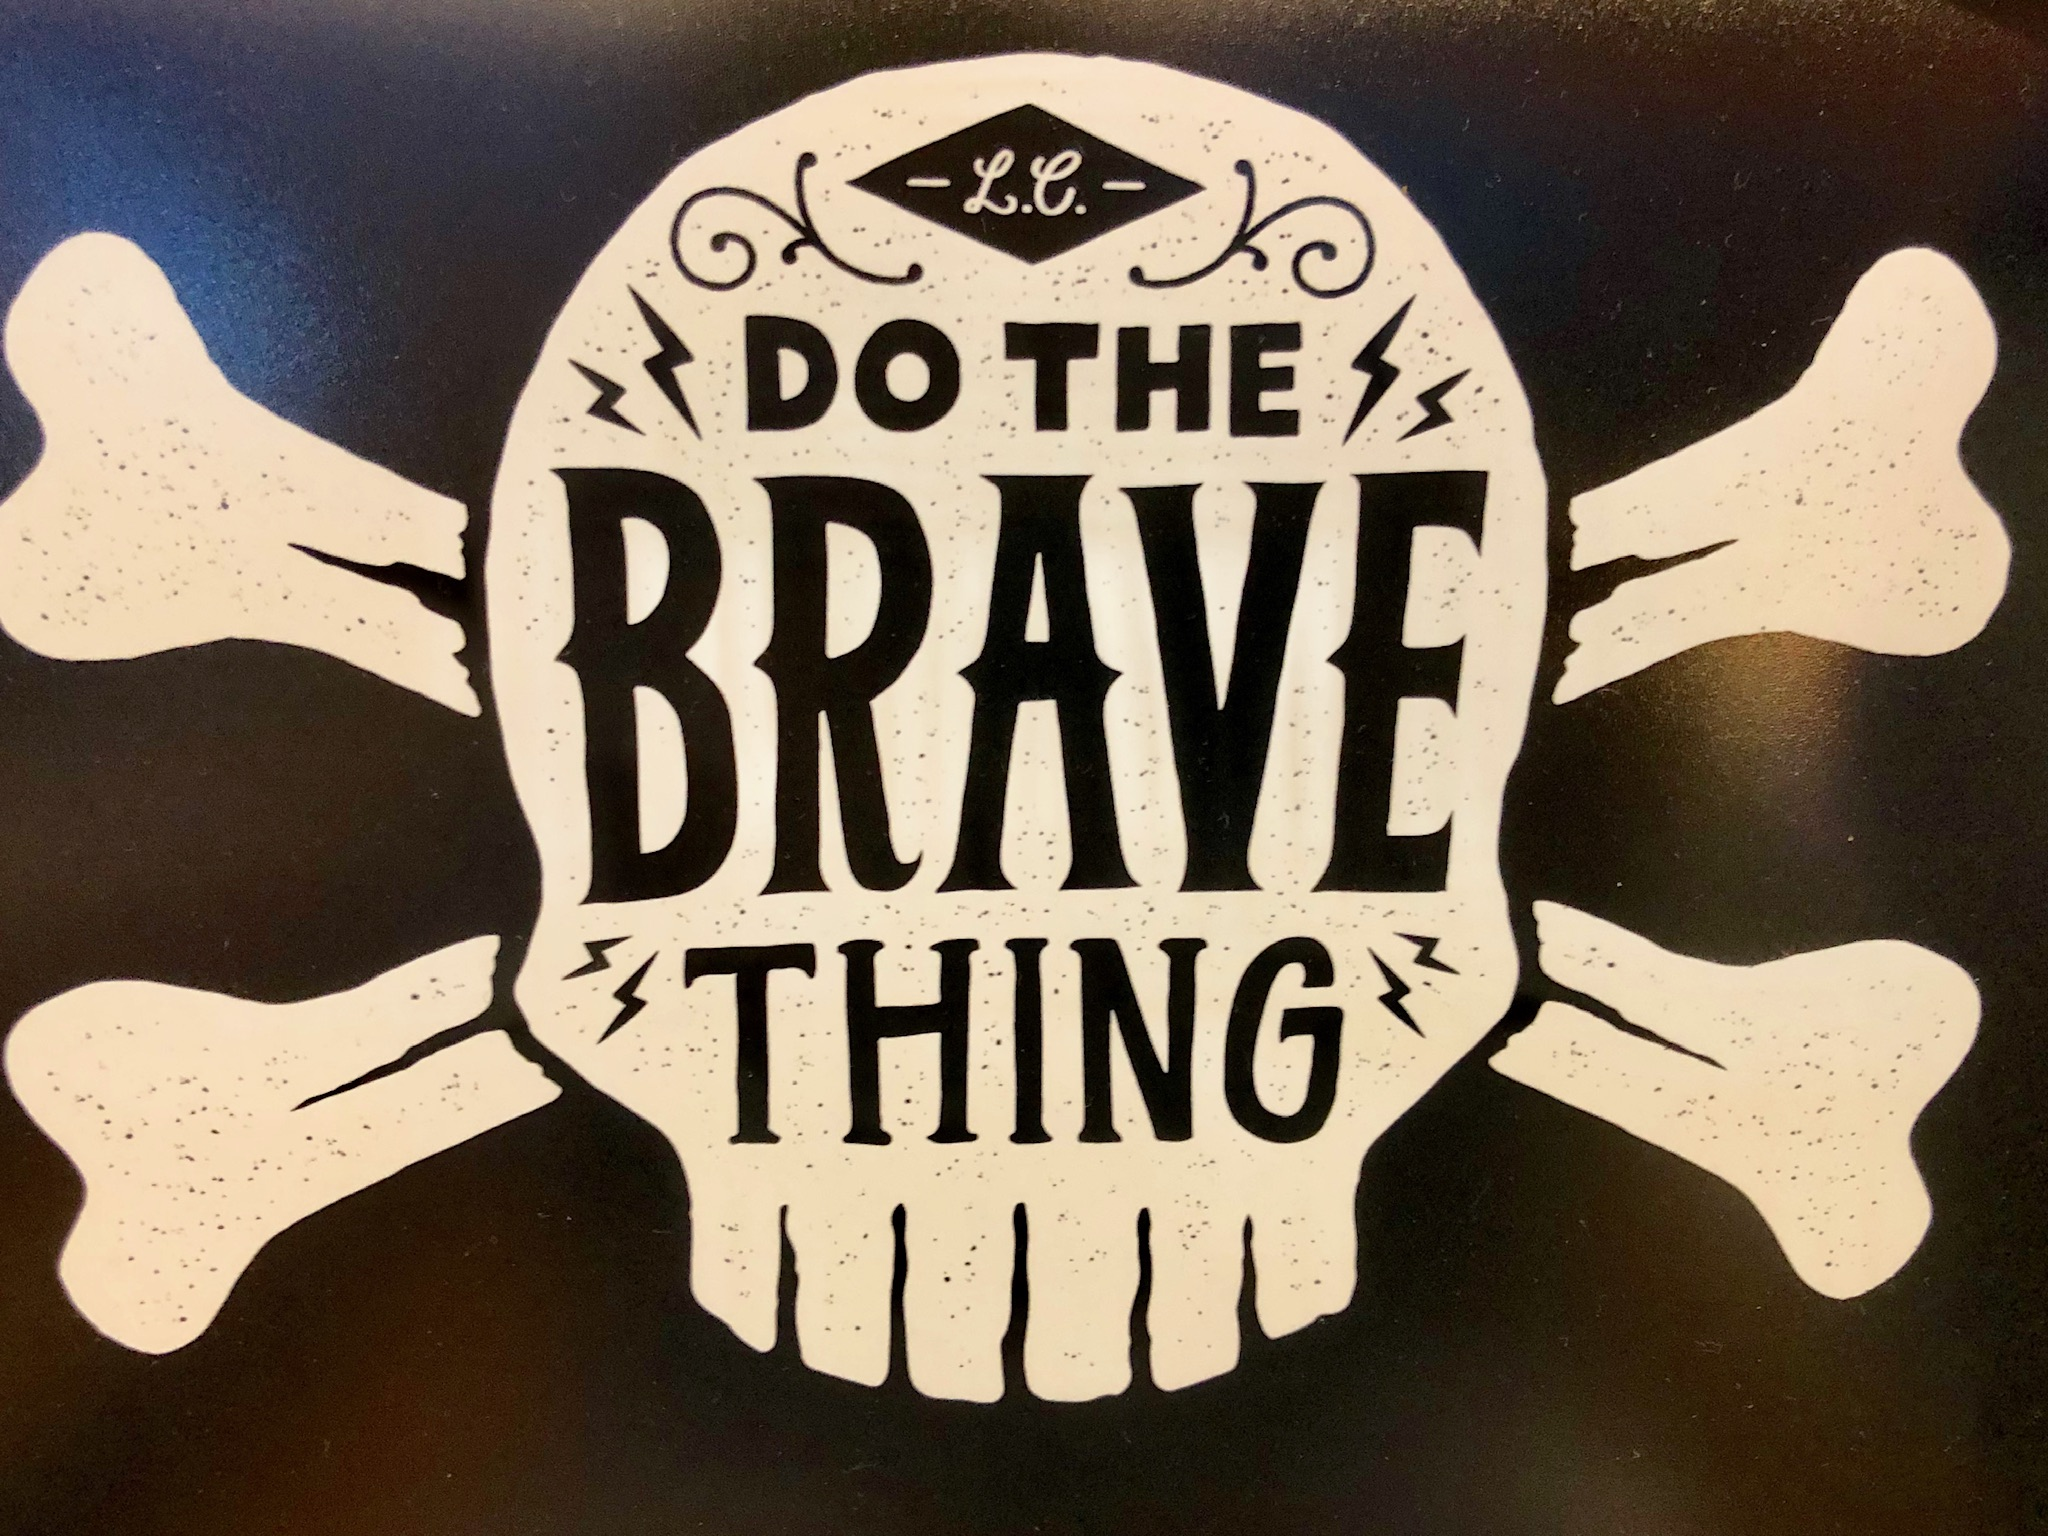 Do the brave thing Image